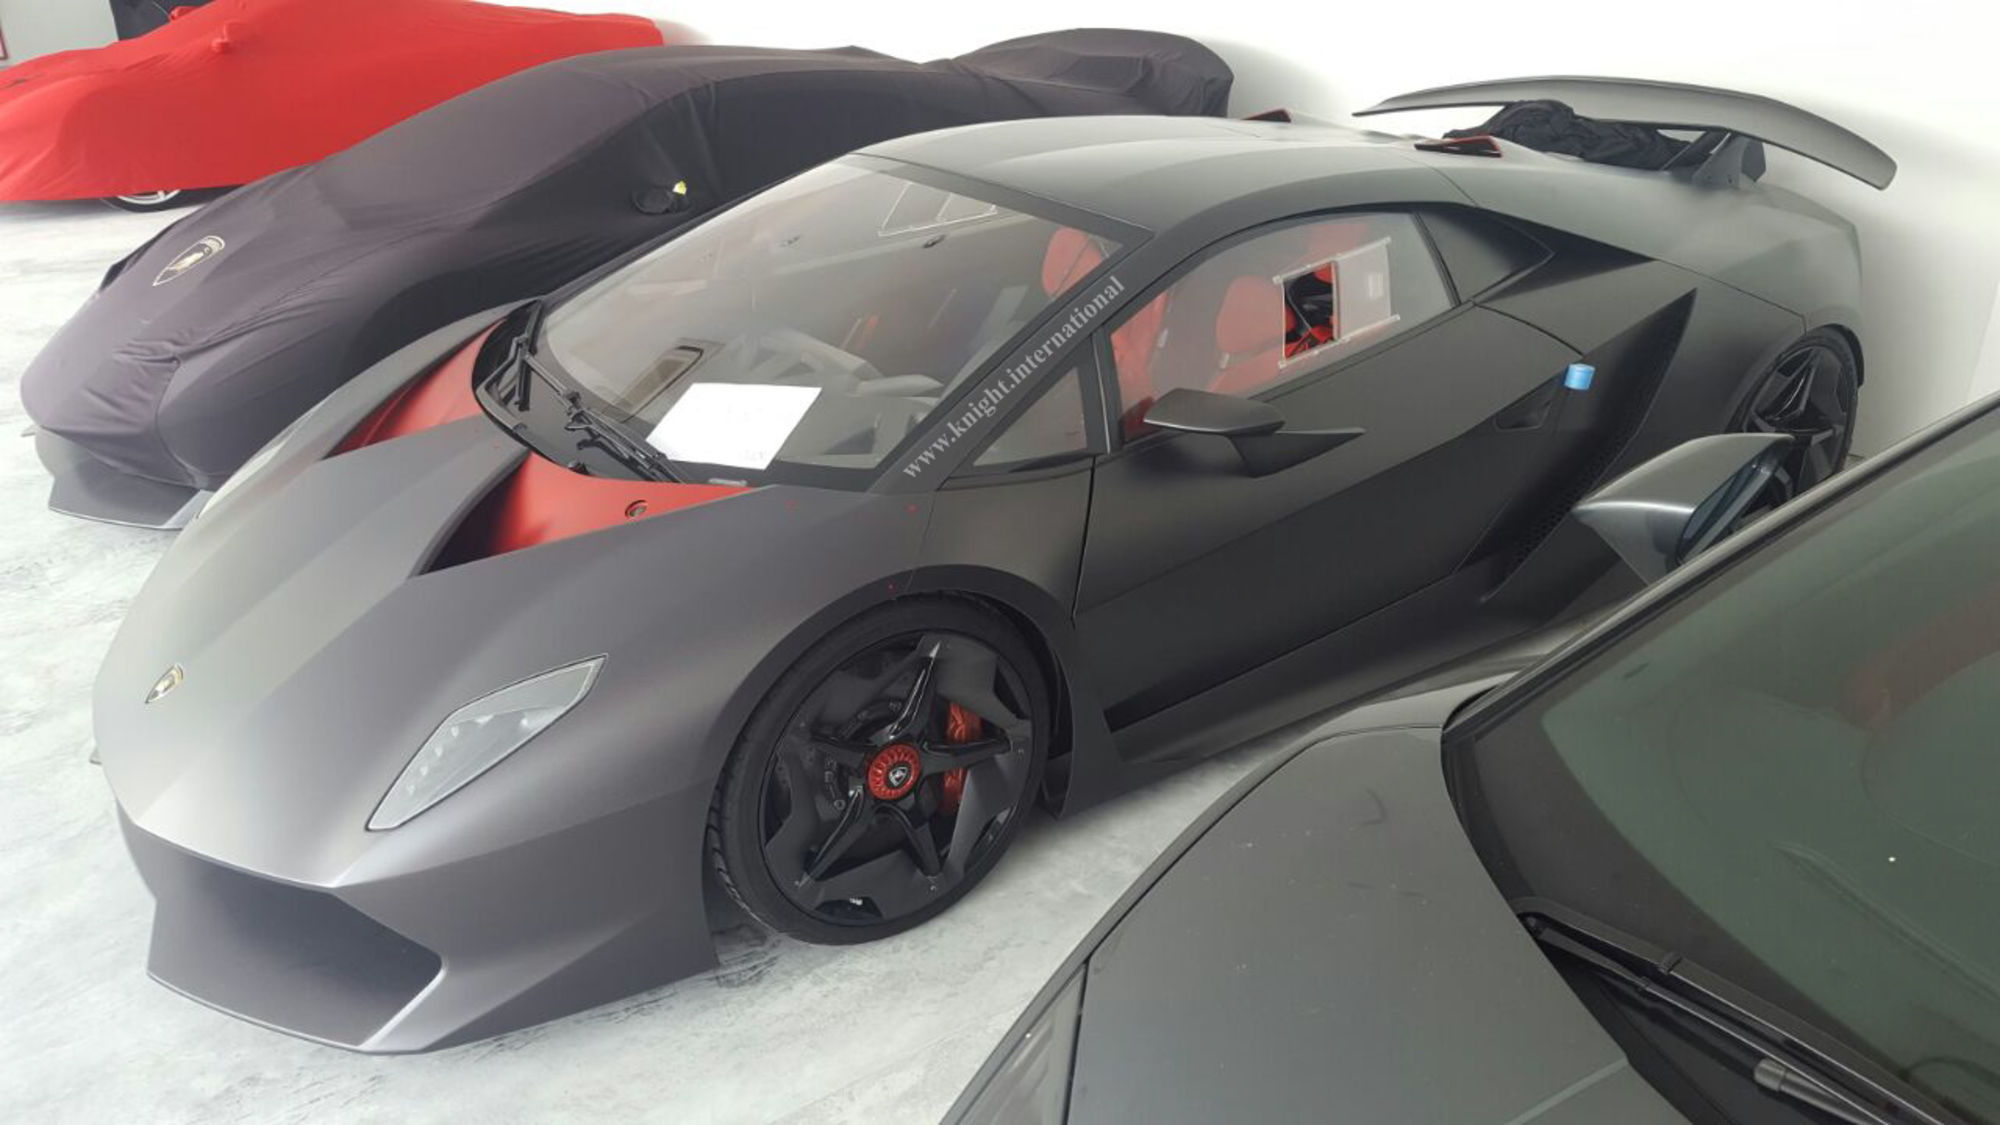 Lamborghini Sesto Elemento for sale with no miles